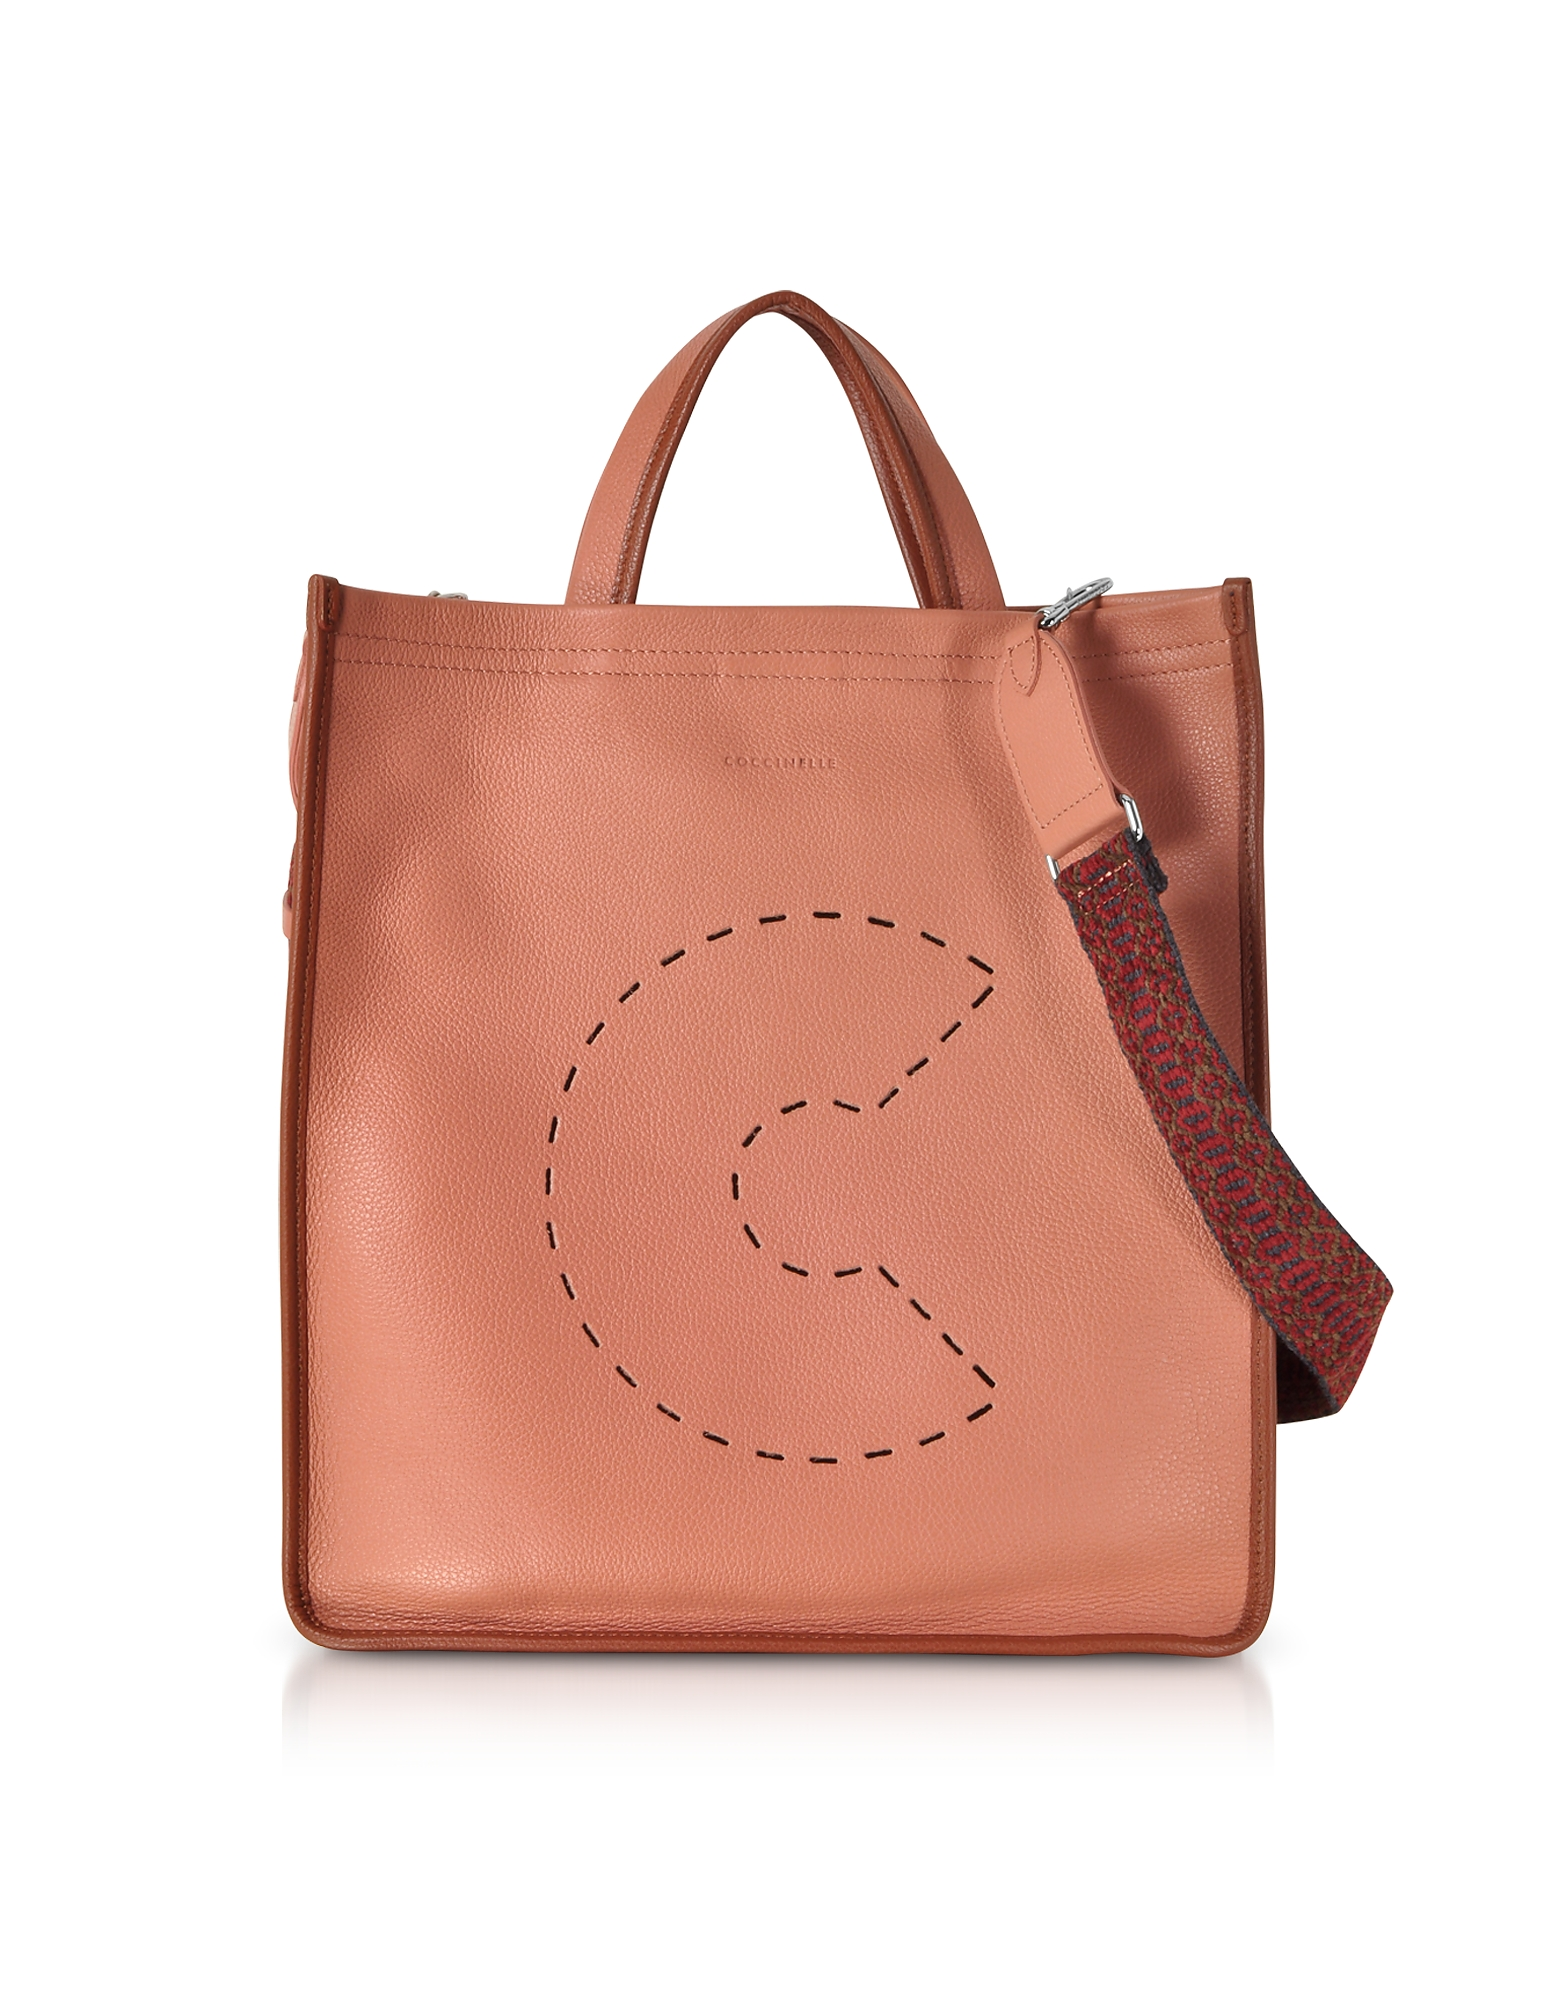 C Bag Grained Leather Tote